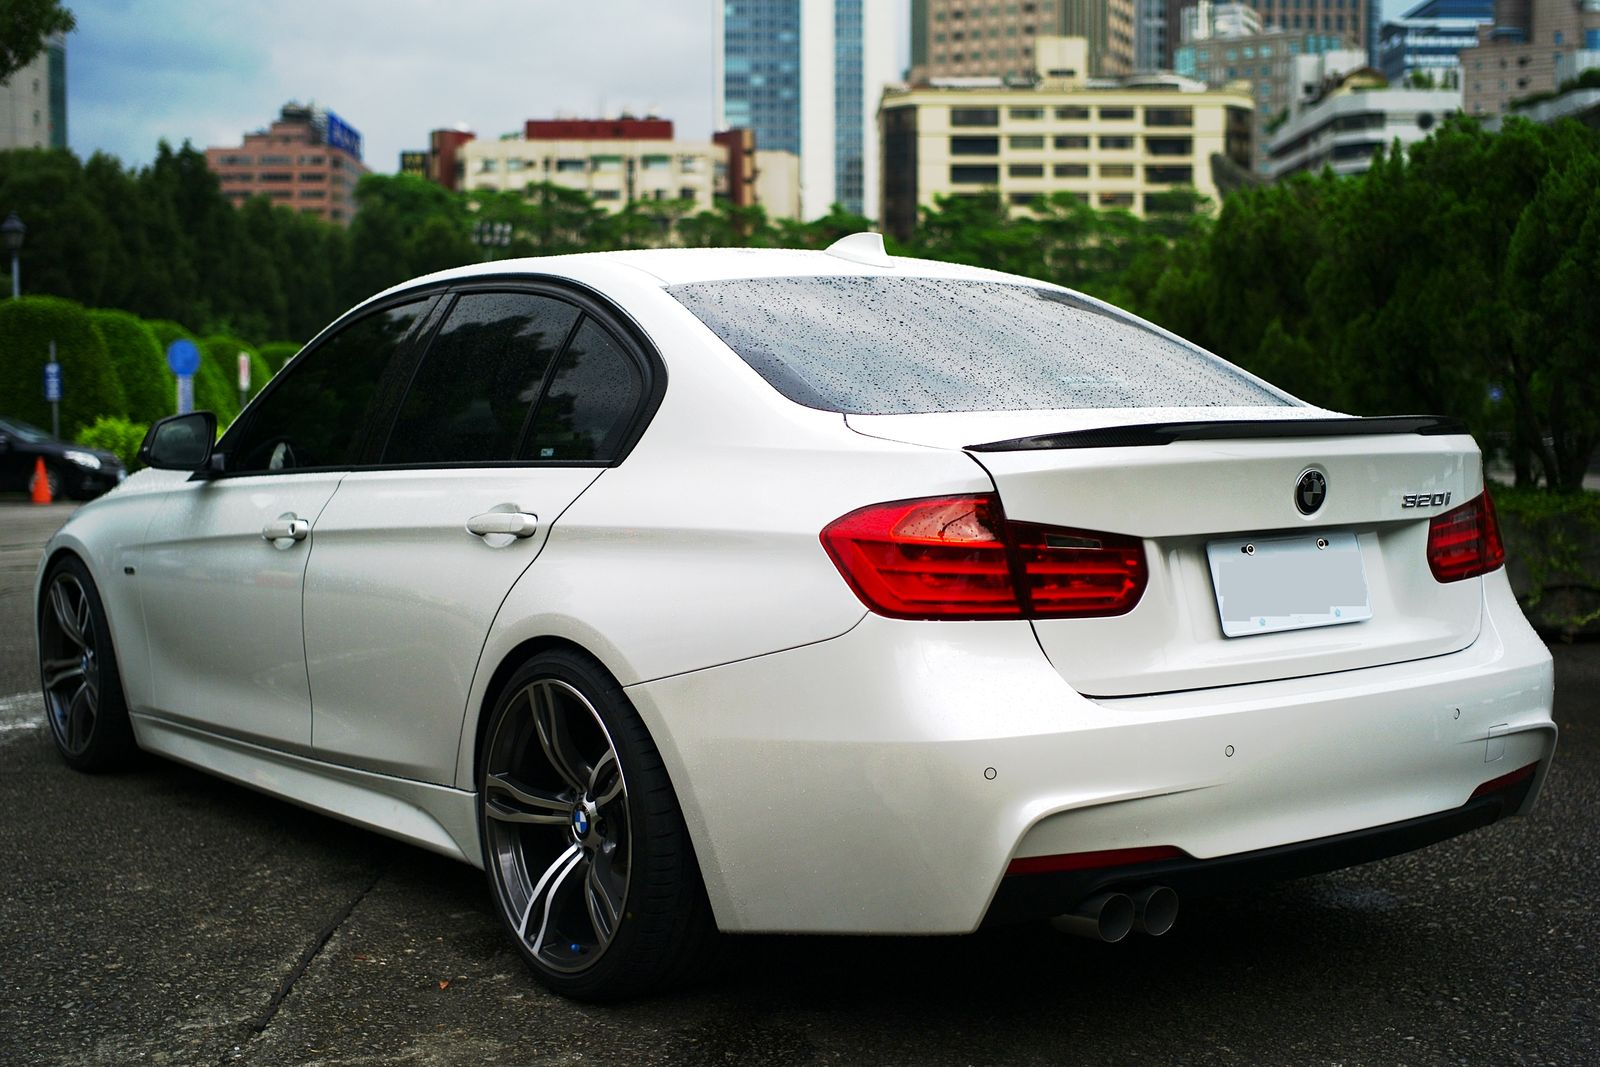 F30 M-Sport STYLE 320 with KW V3 and few other CF Parts